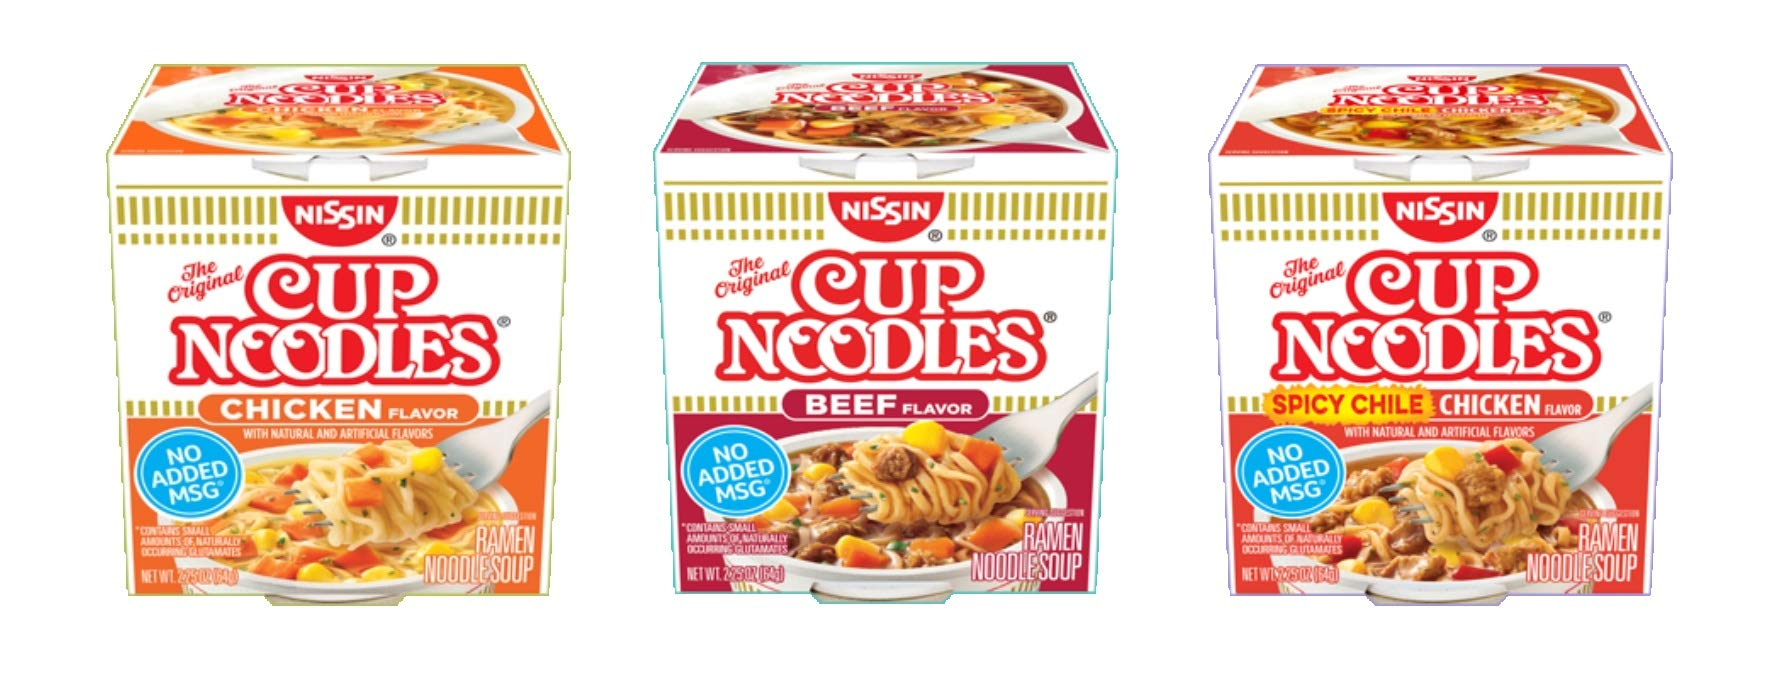 Nissin Cup O Noodles Variety 12 Pack, 2.25-Ounce, Beef, Chicken and Shrimp